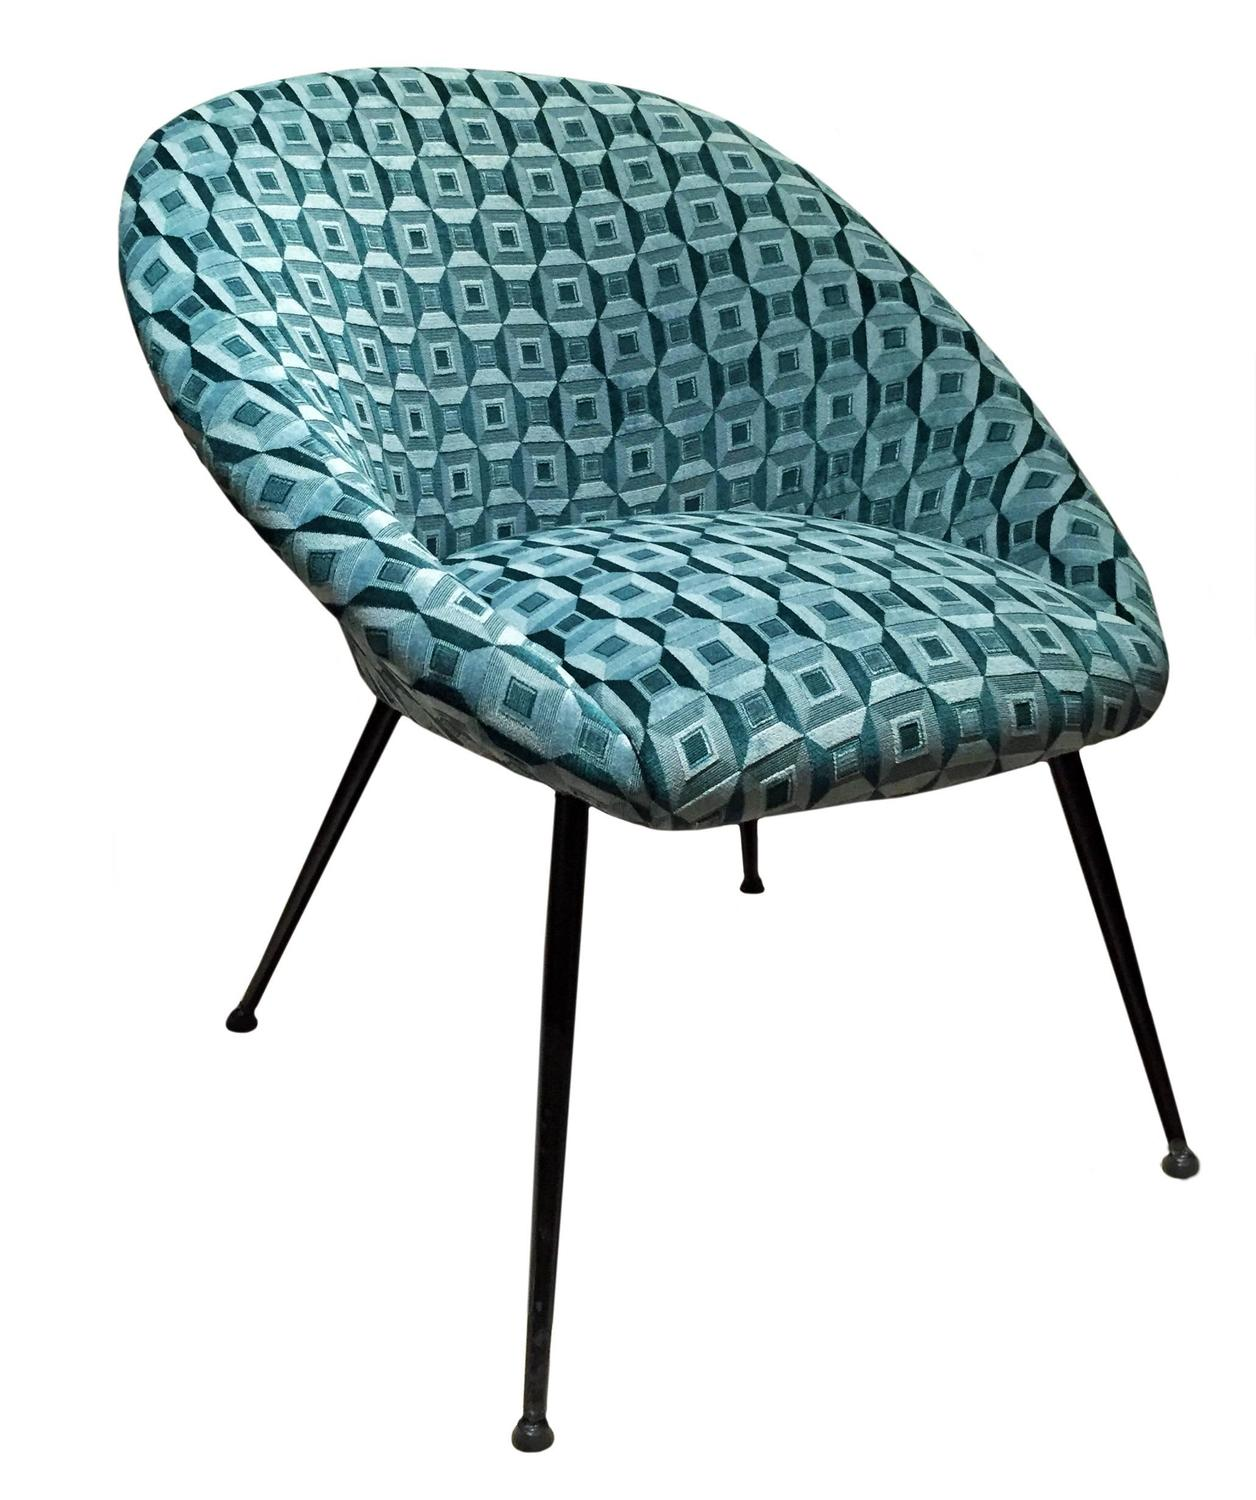 Curved Back Lounge Chair in Patterned Silk Velvet For Sale at 1stdibs